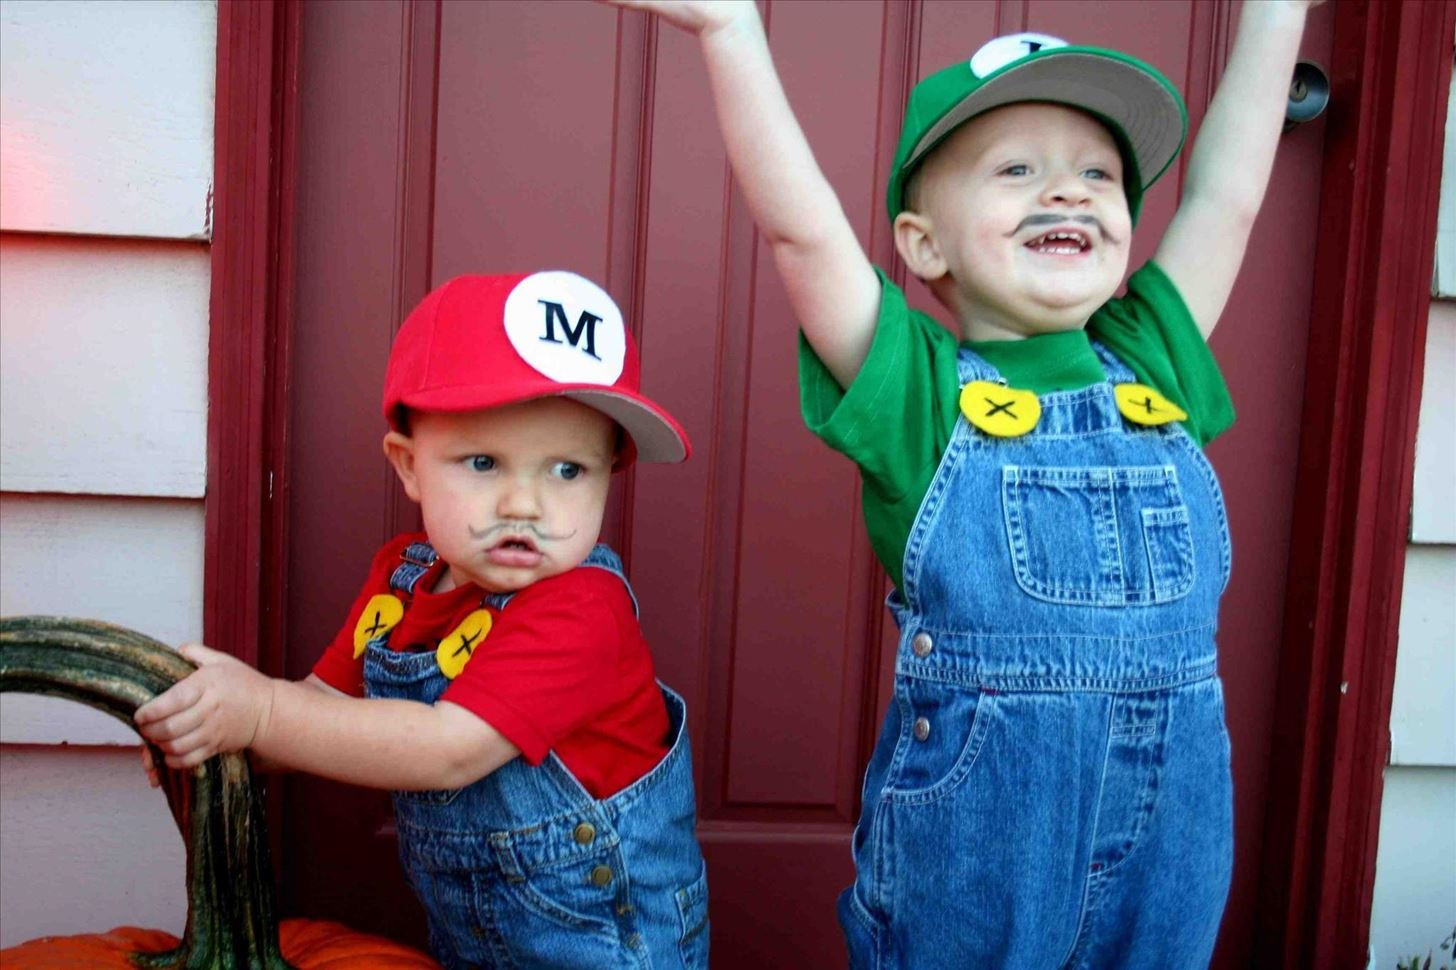 Best ideas about Easy DIY Kids Costumes . Save or Pin 10 Cheap Easy & Awesome DIY Halloween Costumes for Kids Now.